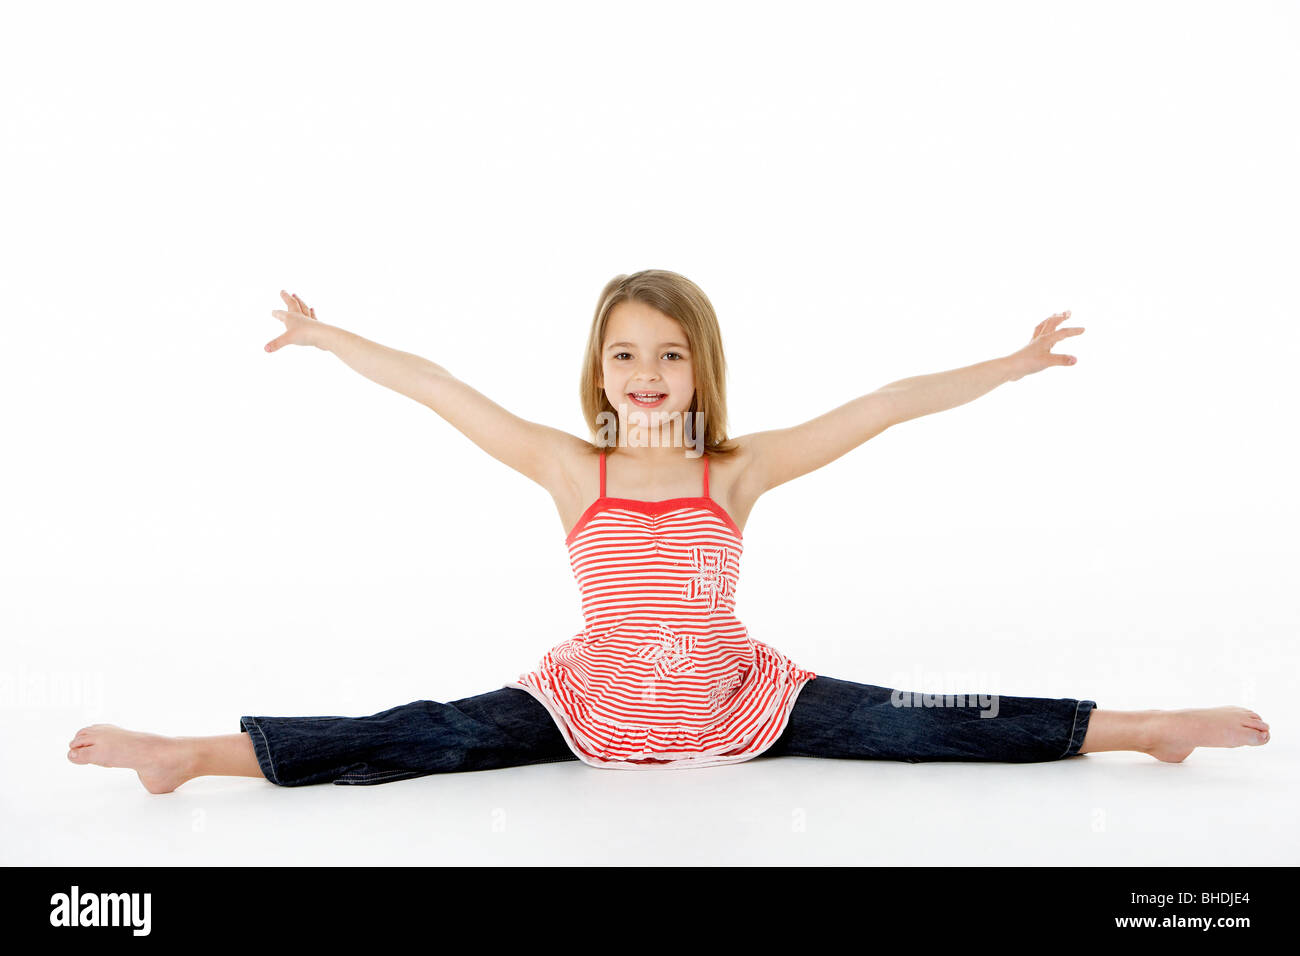 gymnastic girl Stock Photo - Young Girl In Gymnastic Pose Doing Splits